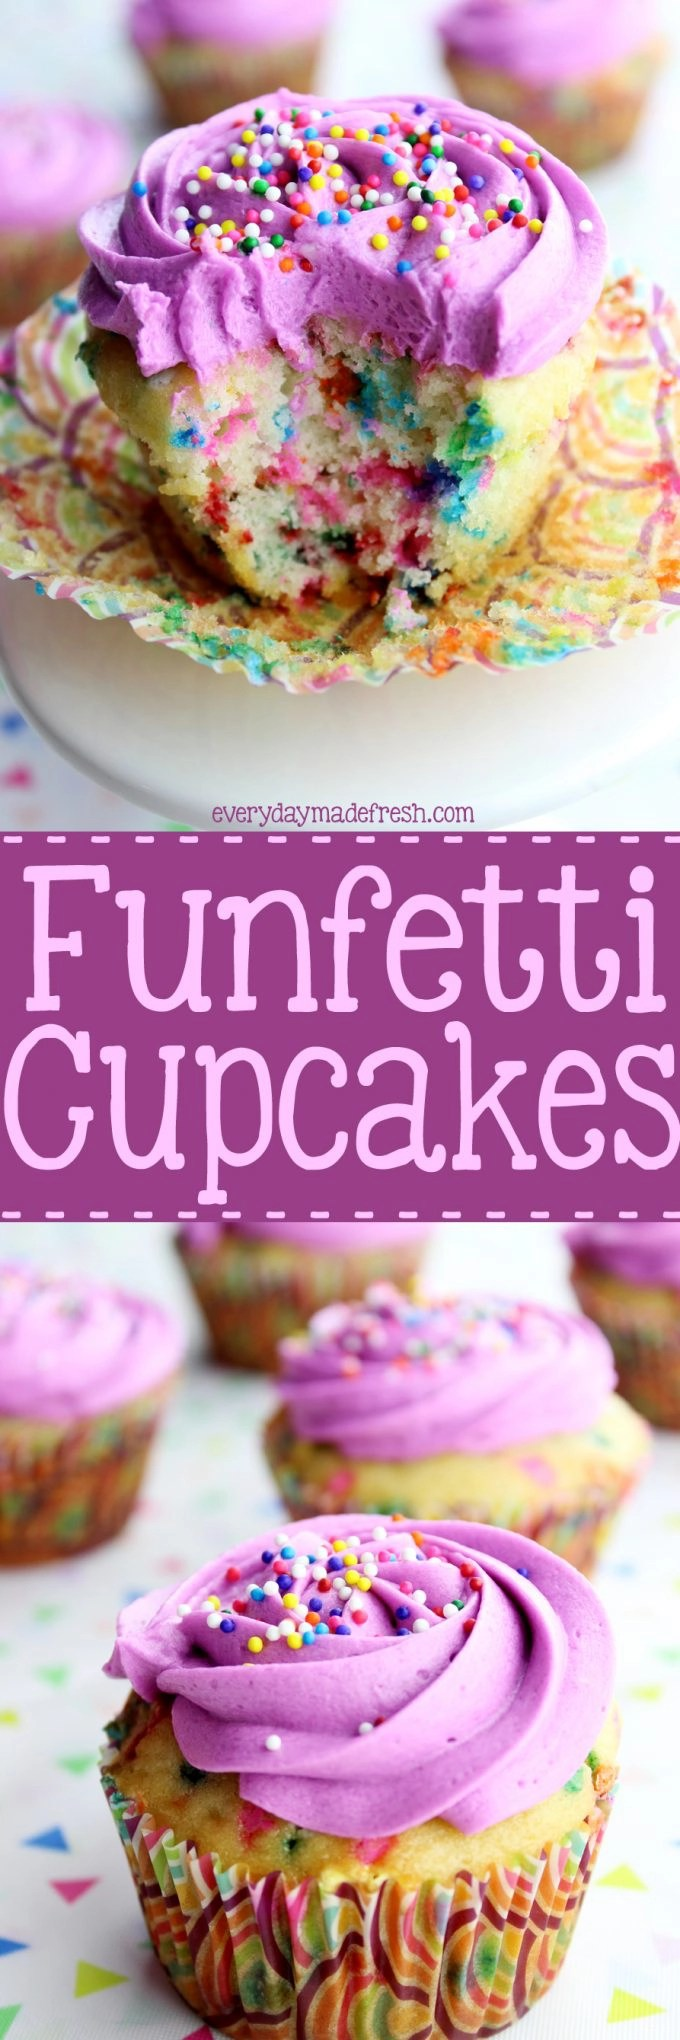 Sprinkles are all the rage, which means these Funfetti Cupcakes will be a hit at your next party! They are simple to make and the best part...they don't require a mixer! | EverydayMadeFresh.com